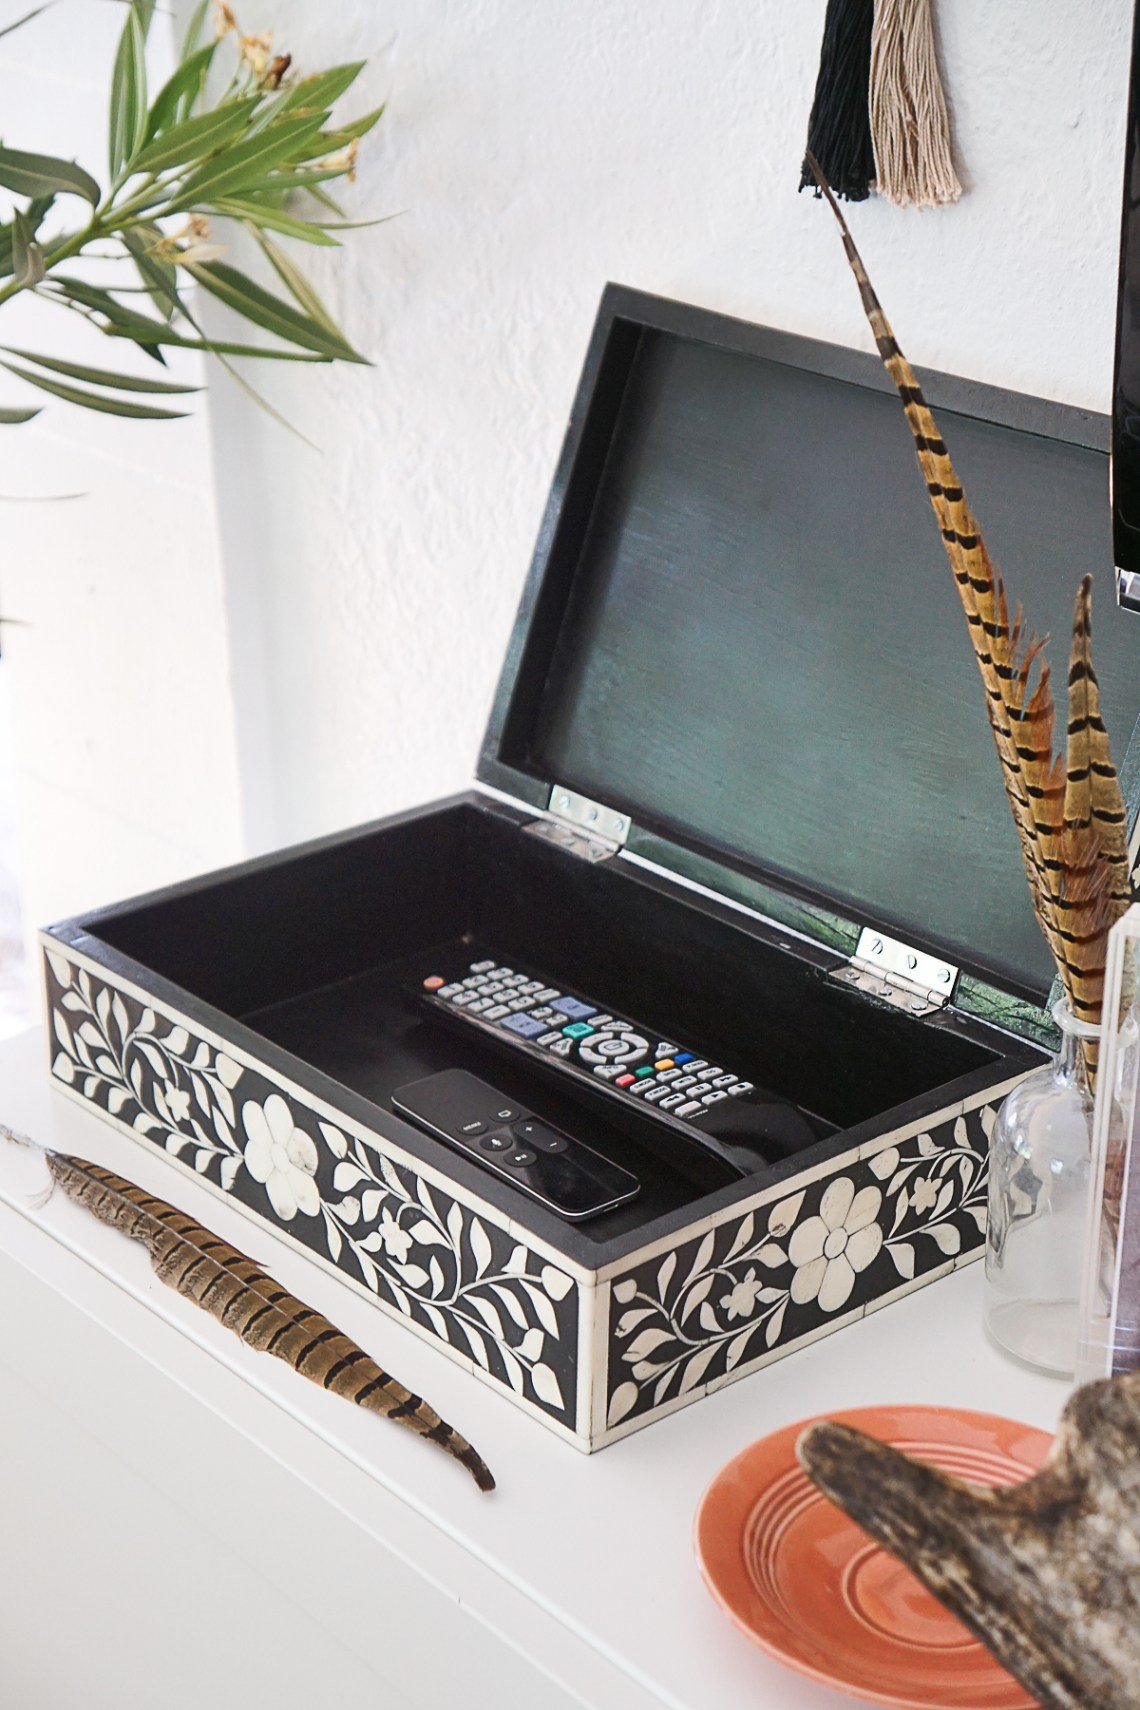 Exploring the handmade process involved in creating a Meridian bone inlay box made by a family of master artisans in Rajasthan, India.